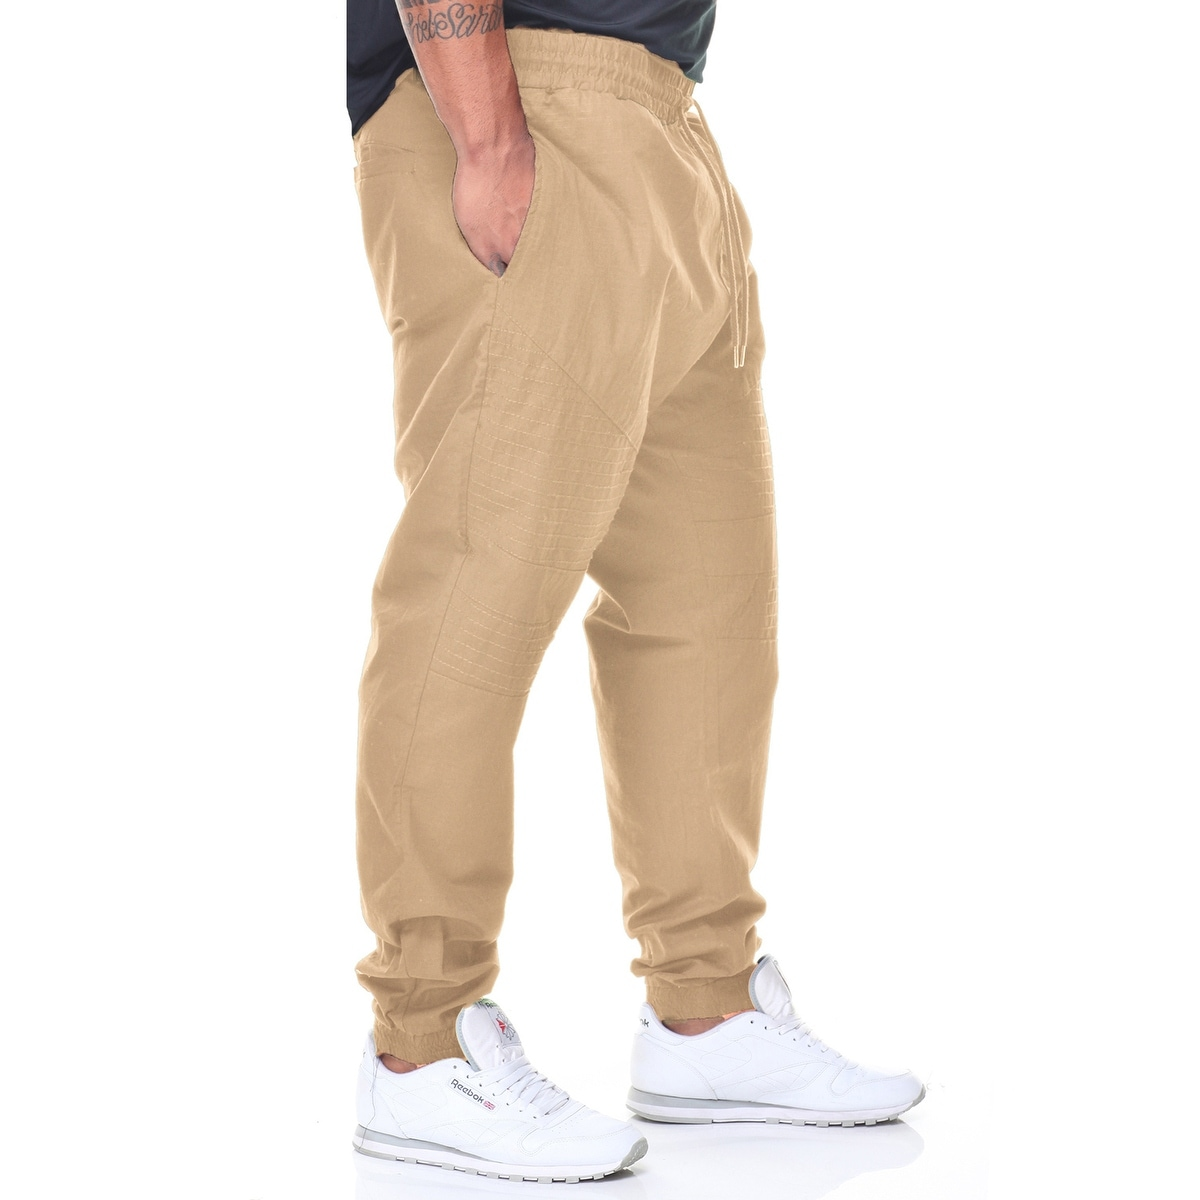 new lower prices discount coupon enjoy best price Fly Society Big Men's Stretch Twill Cargo Jogger Pant